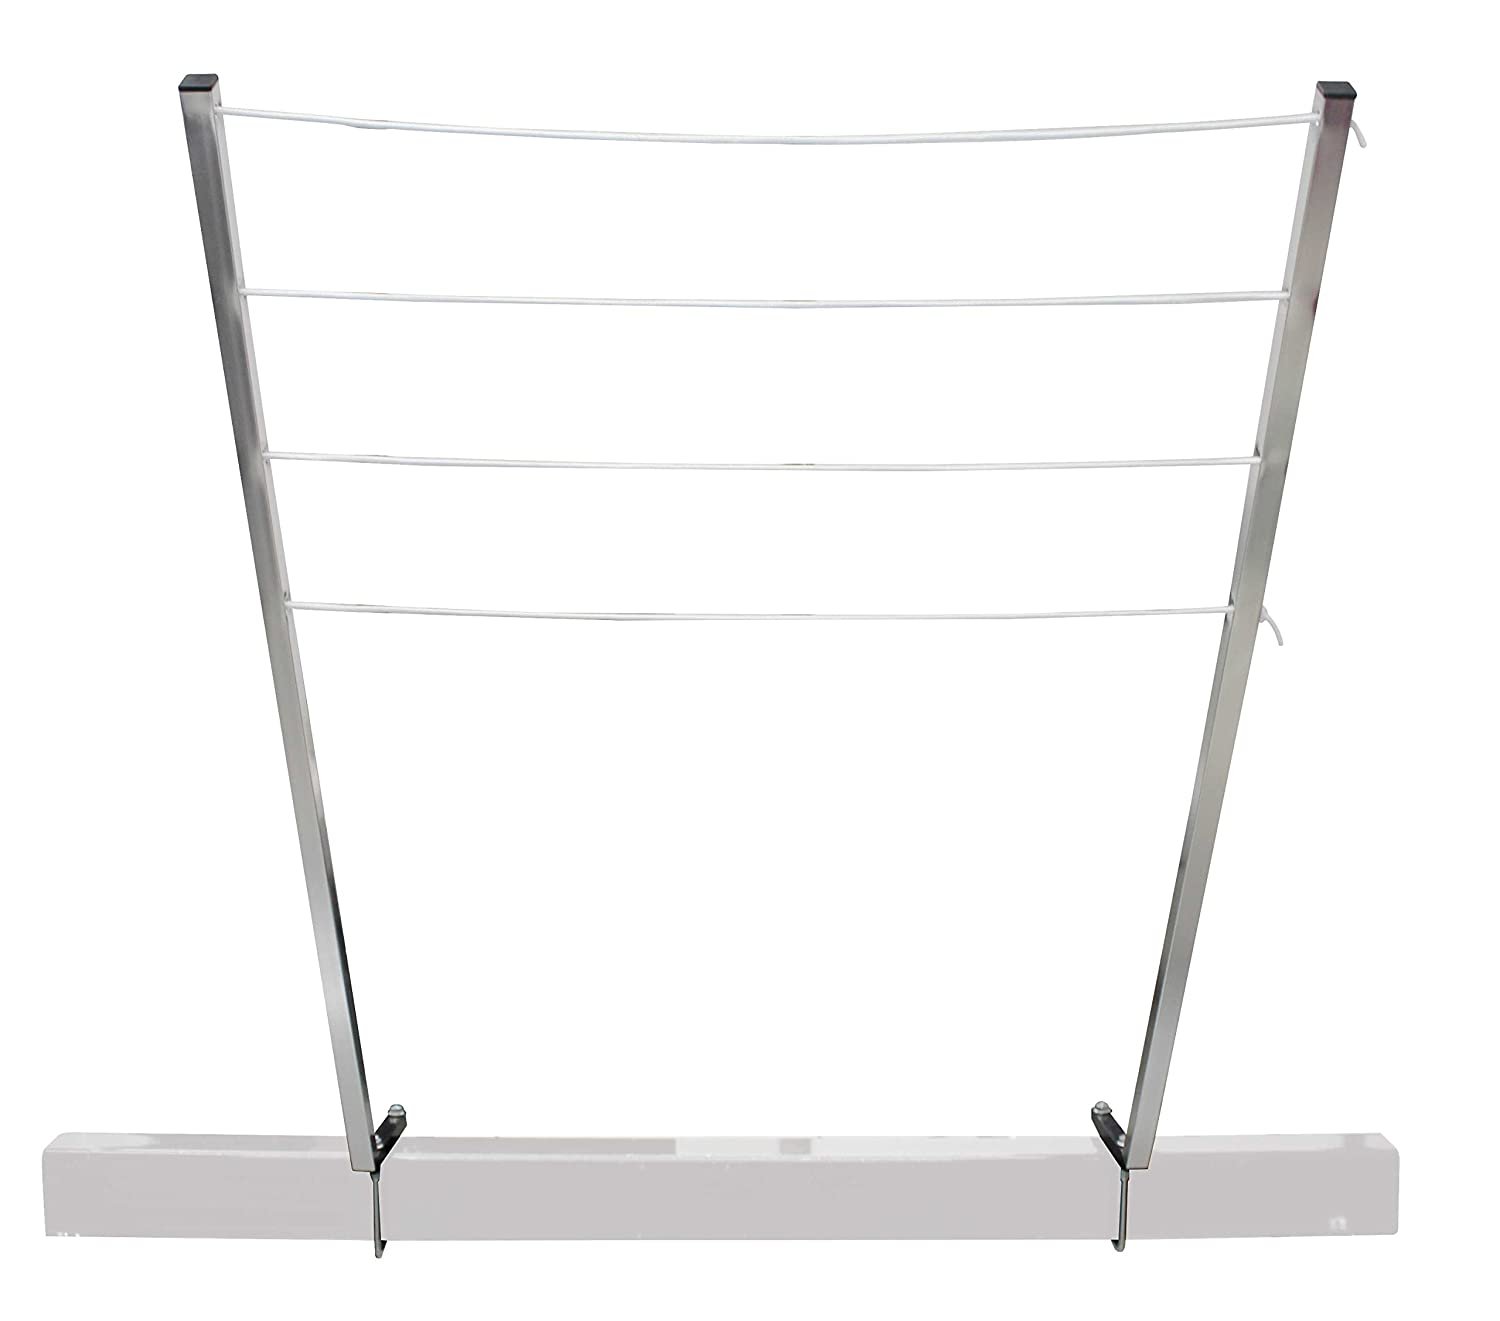 Quick Products QP-CL-100 RV Bumper-Mounted Clothesline